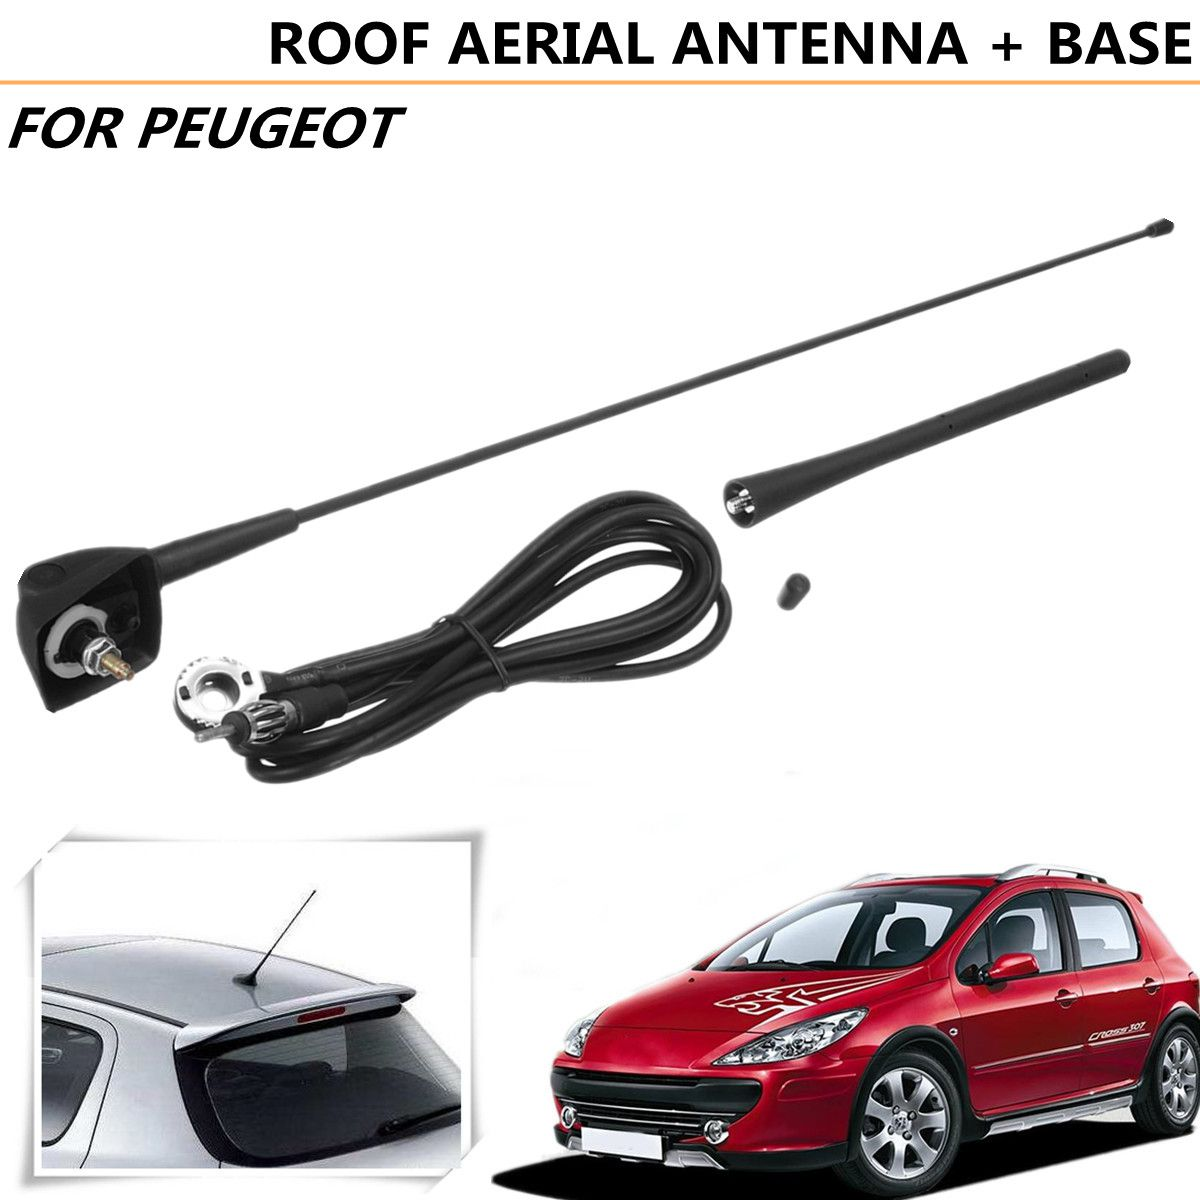 Square Base Roof Antenna and Mount For Peugeot 106 205 206 306 307 309 406 806 406